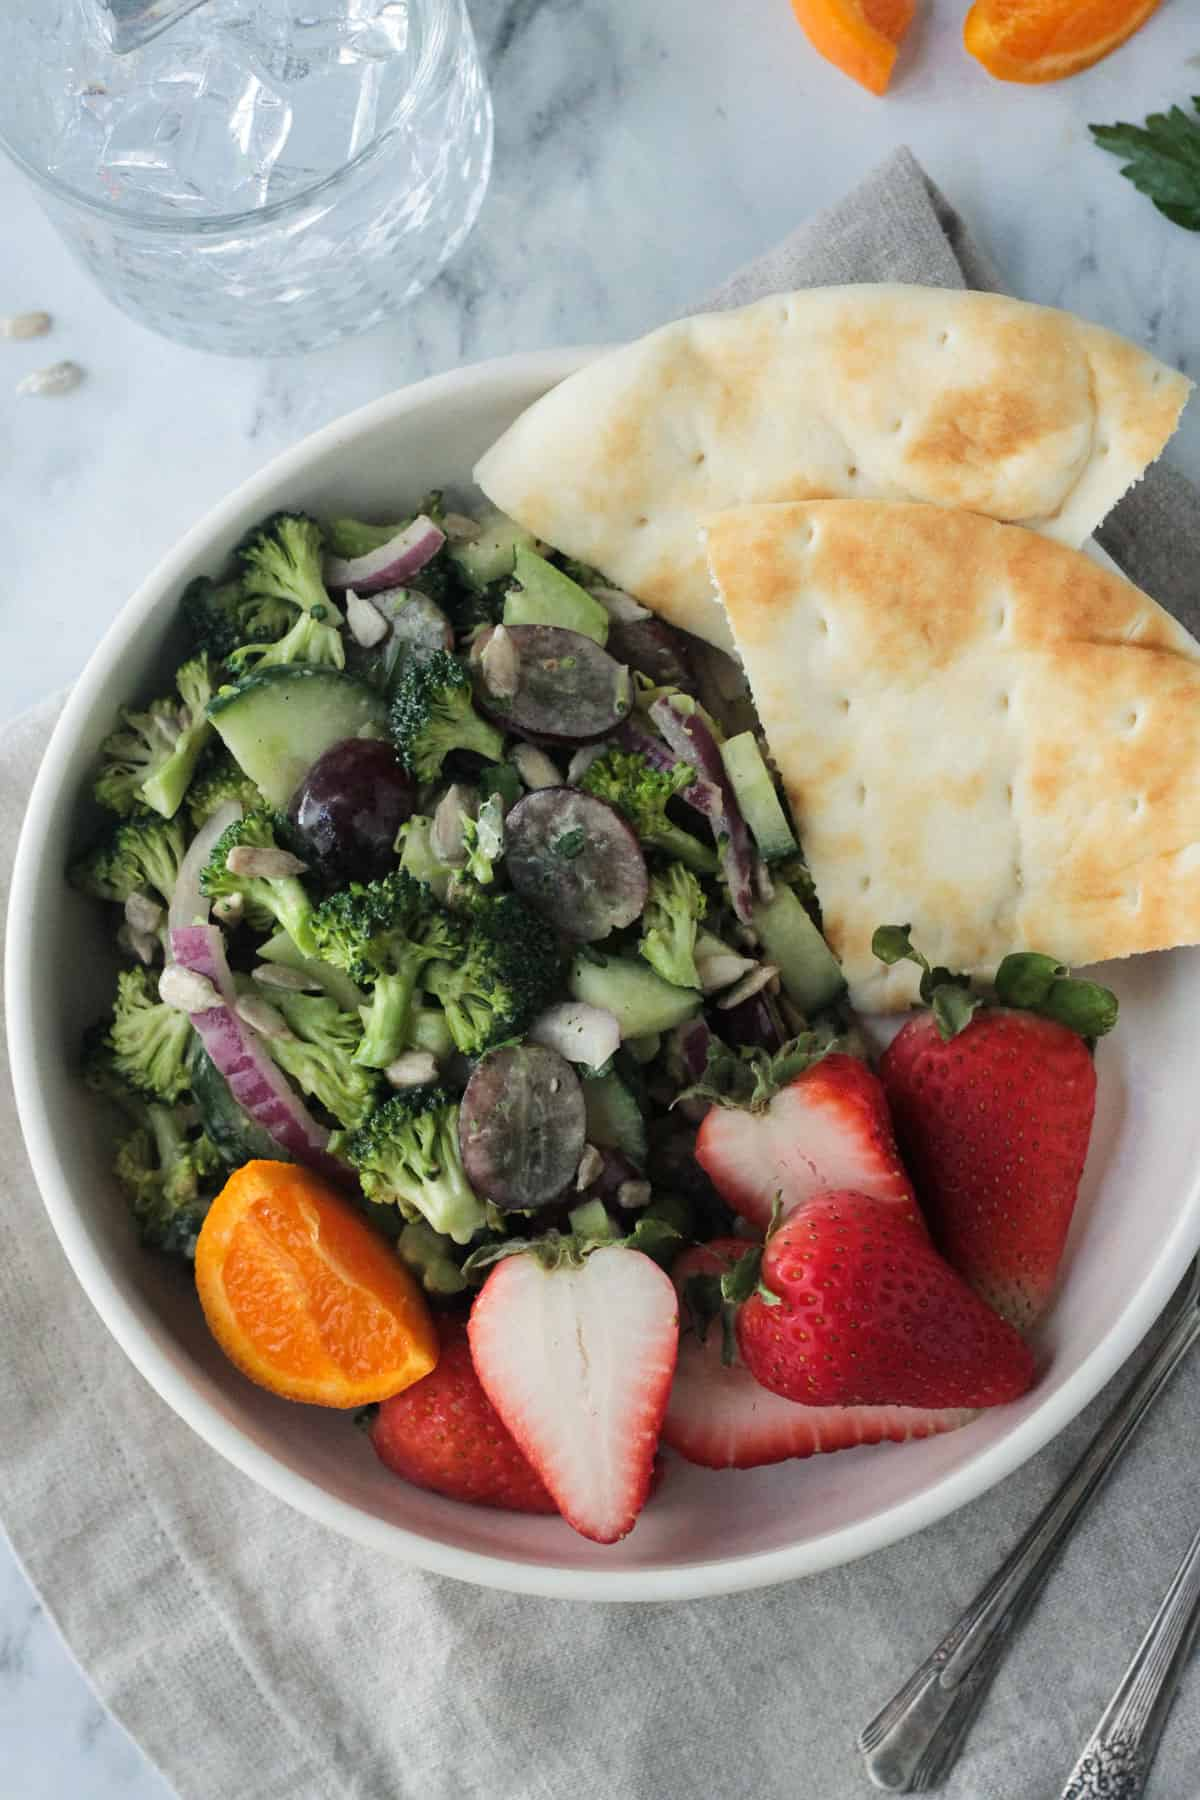 Broccoli salad in a white bowl with pita bread and fresh strawberries.